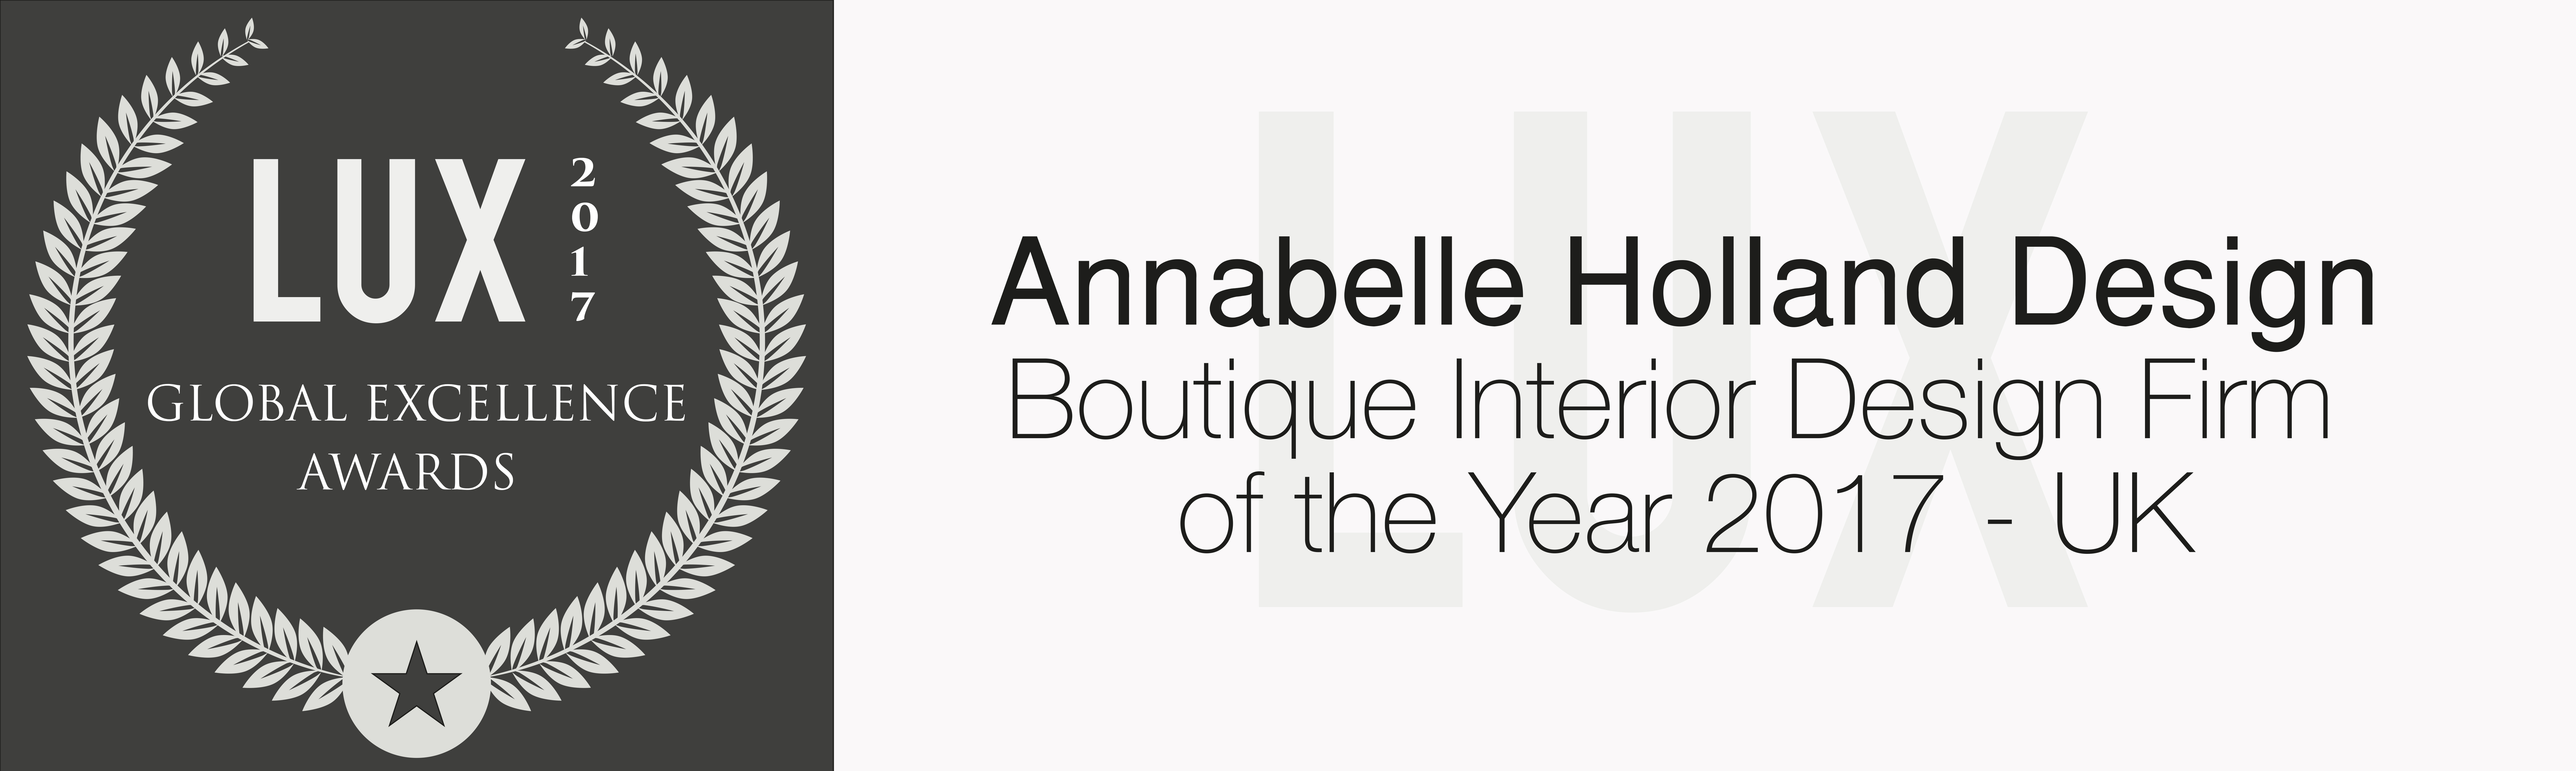 Boutique Interior Design Firm of the Year